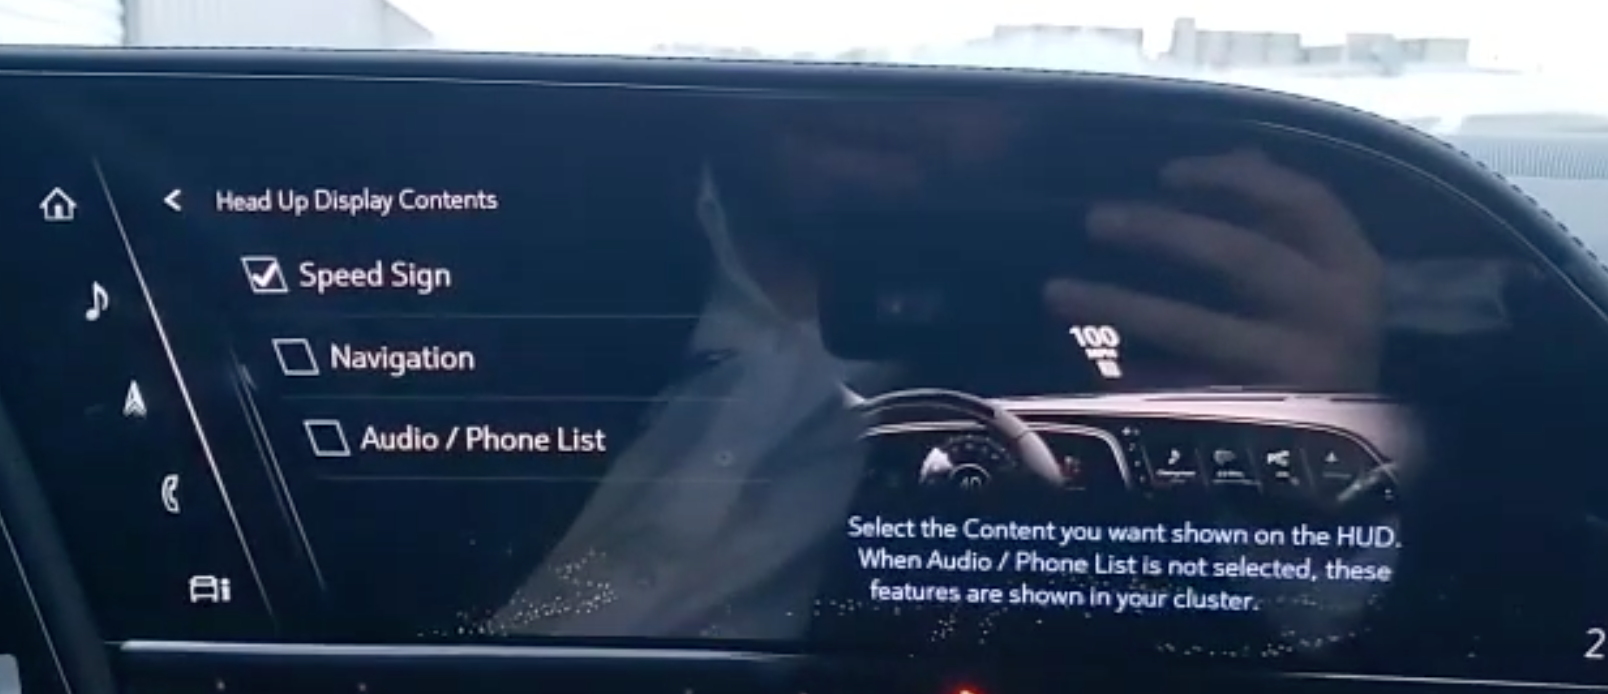 Adjusting the contents that are displayed on the heads-up display through ticking check boxes